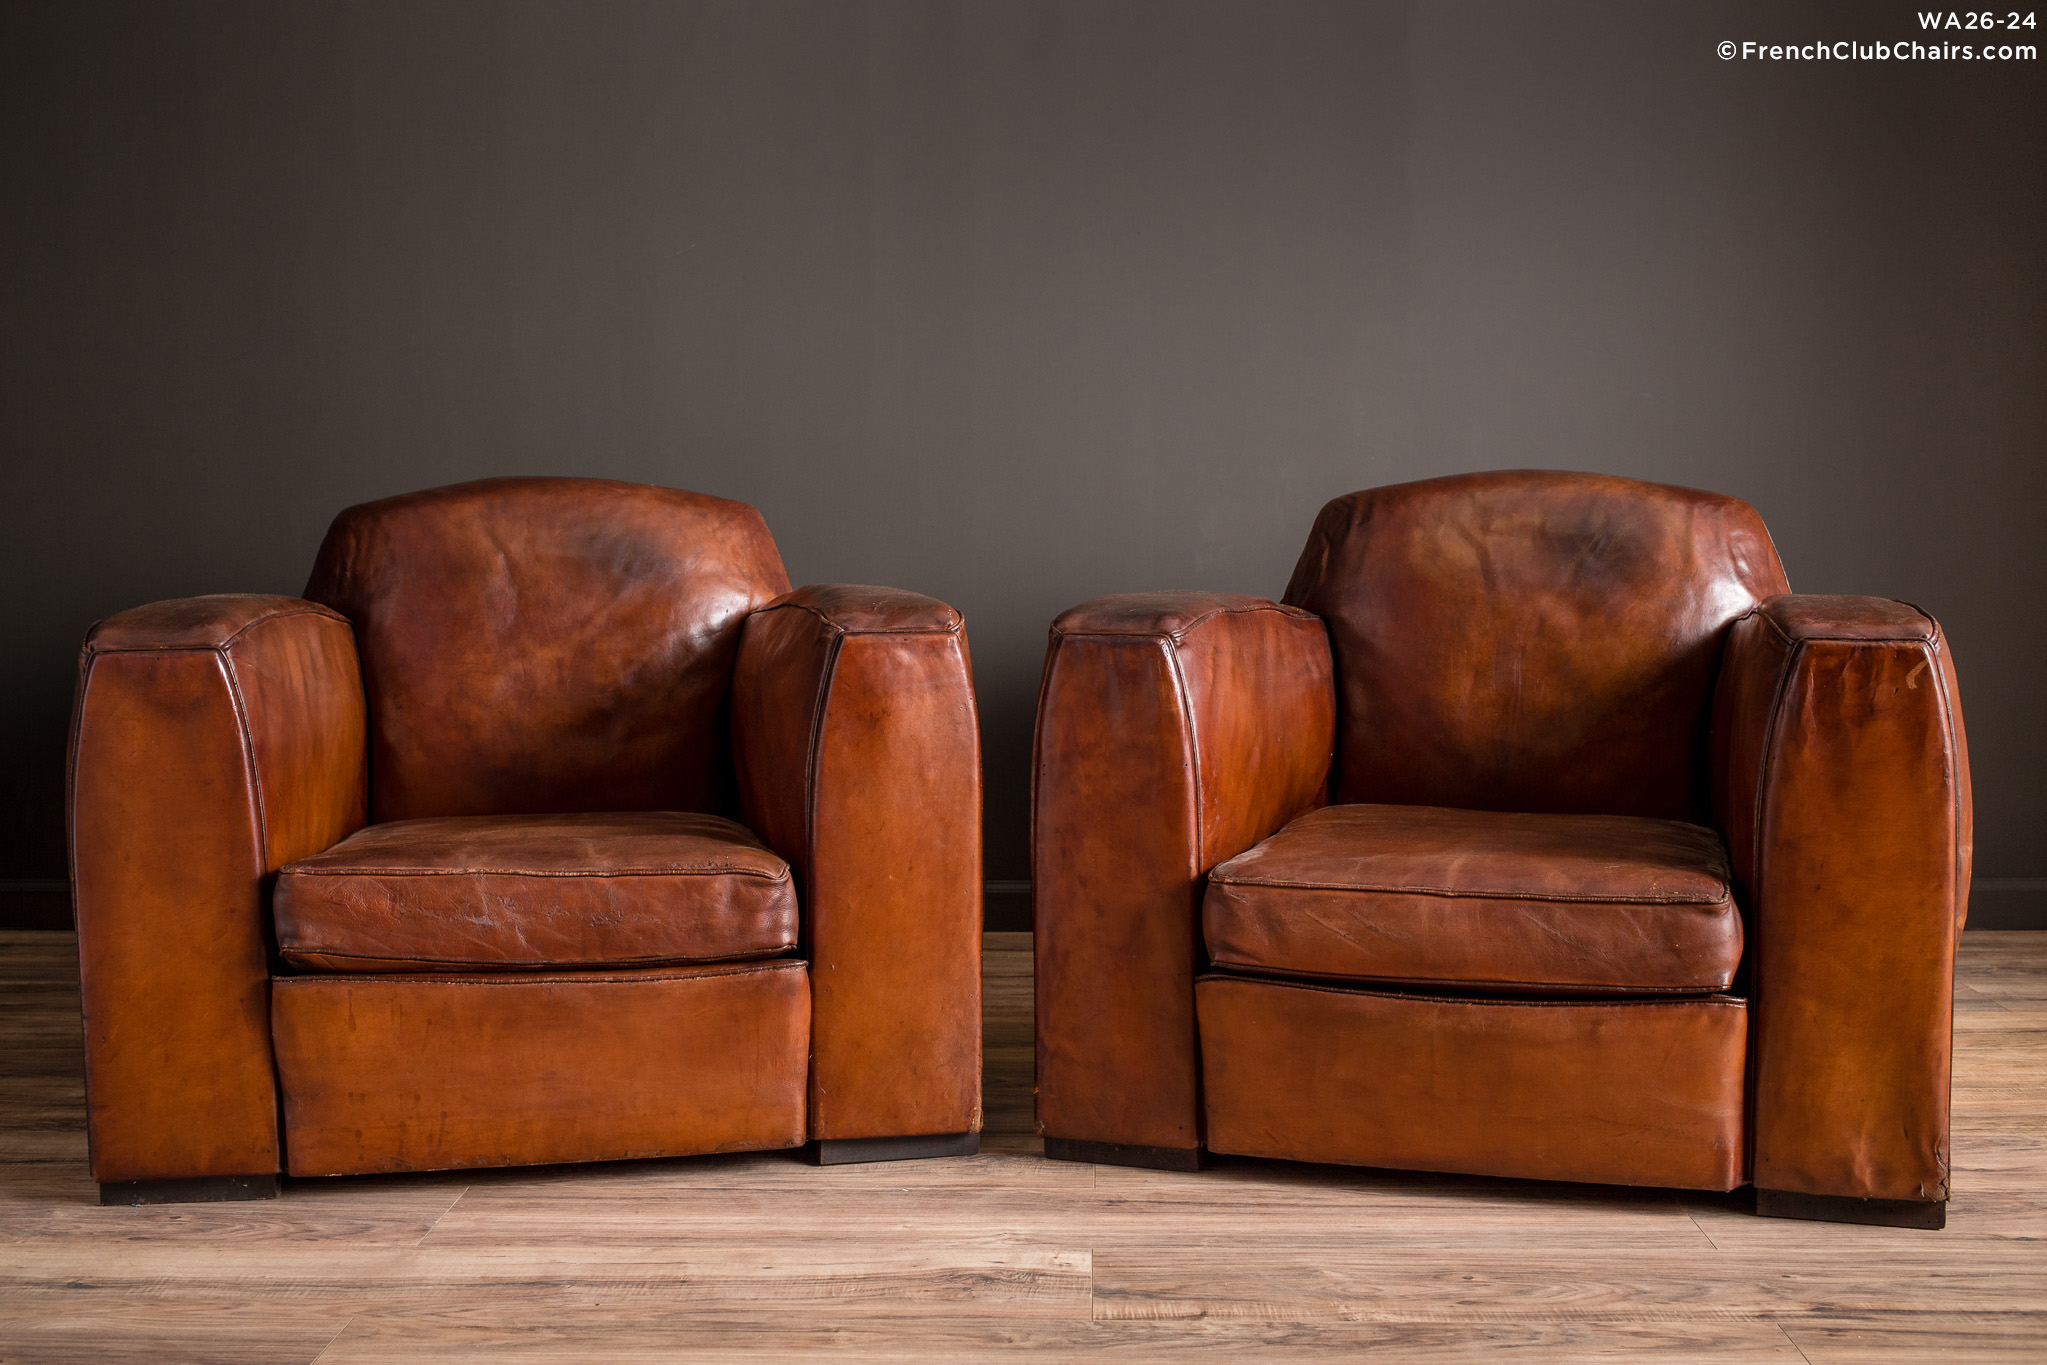 WA_26-24_Jean_Moulin_1920s_Lounge_Pair_R_1TQ-v01-williams-antiks-leather-french-club-chair-wa_fcccom